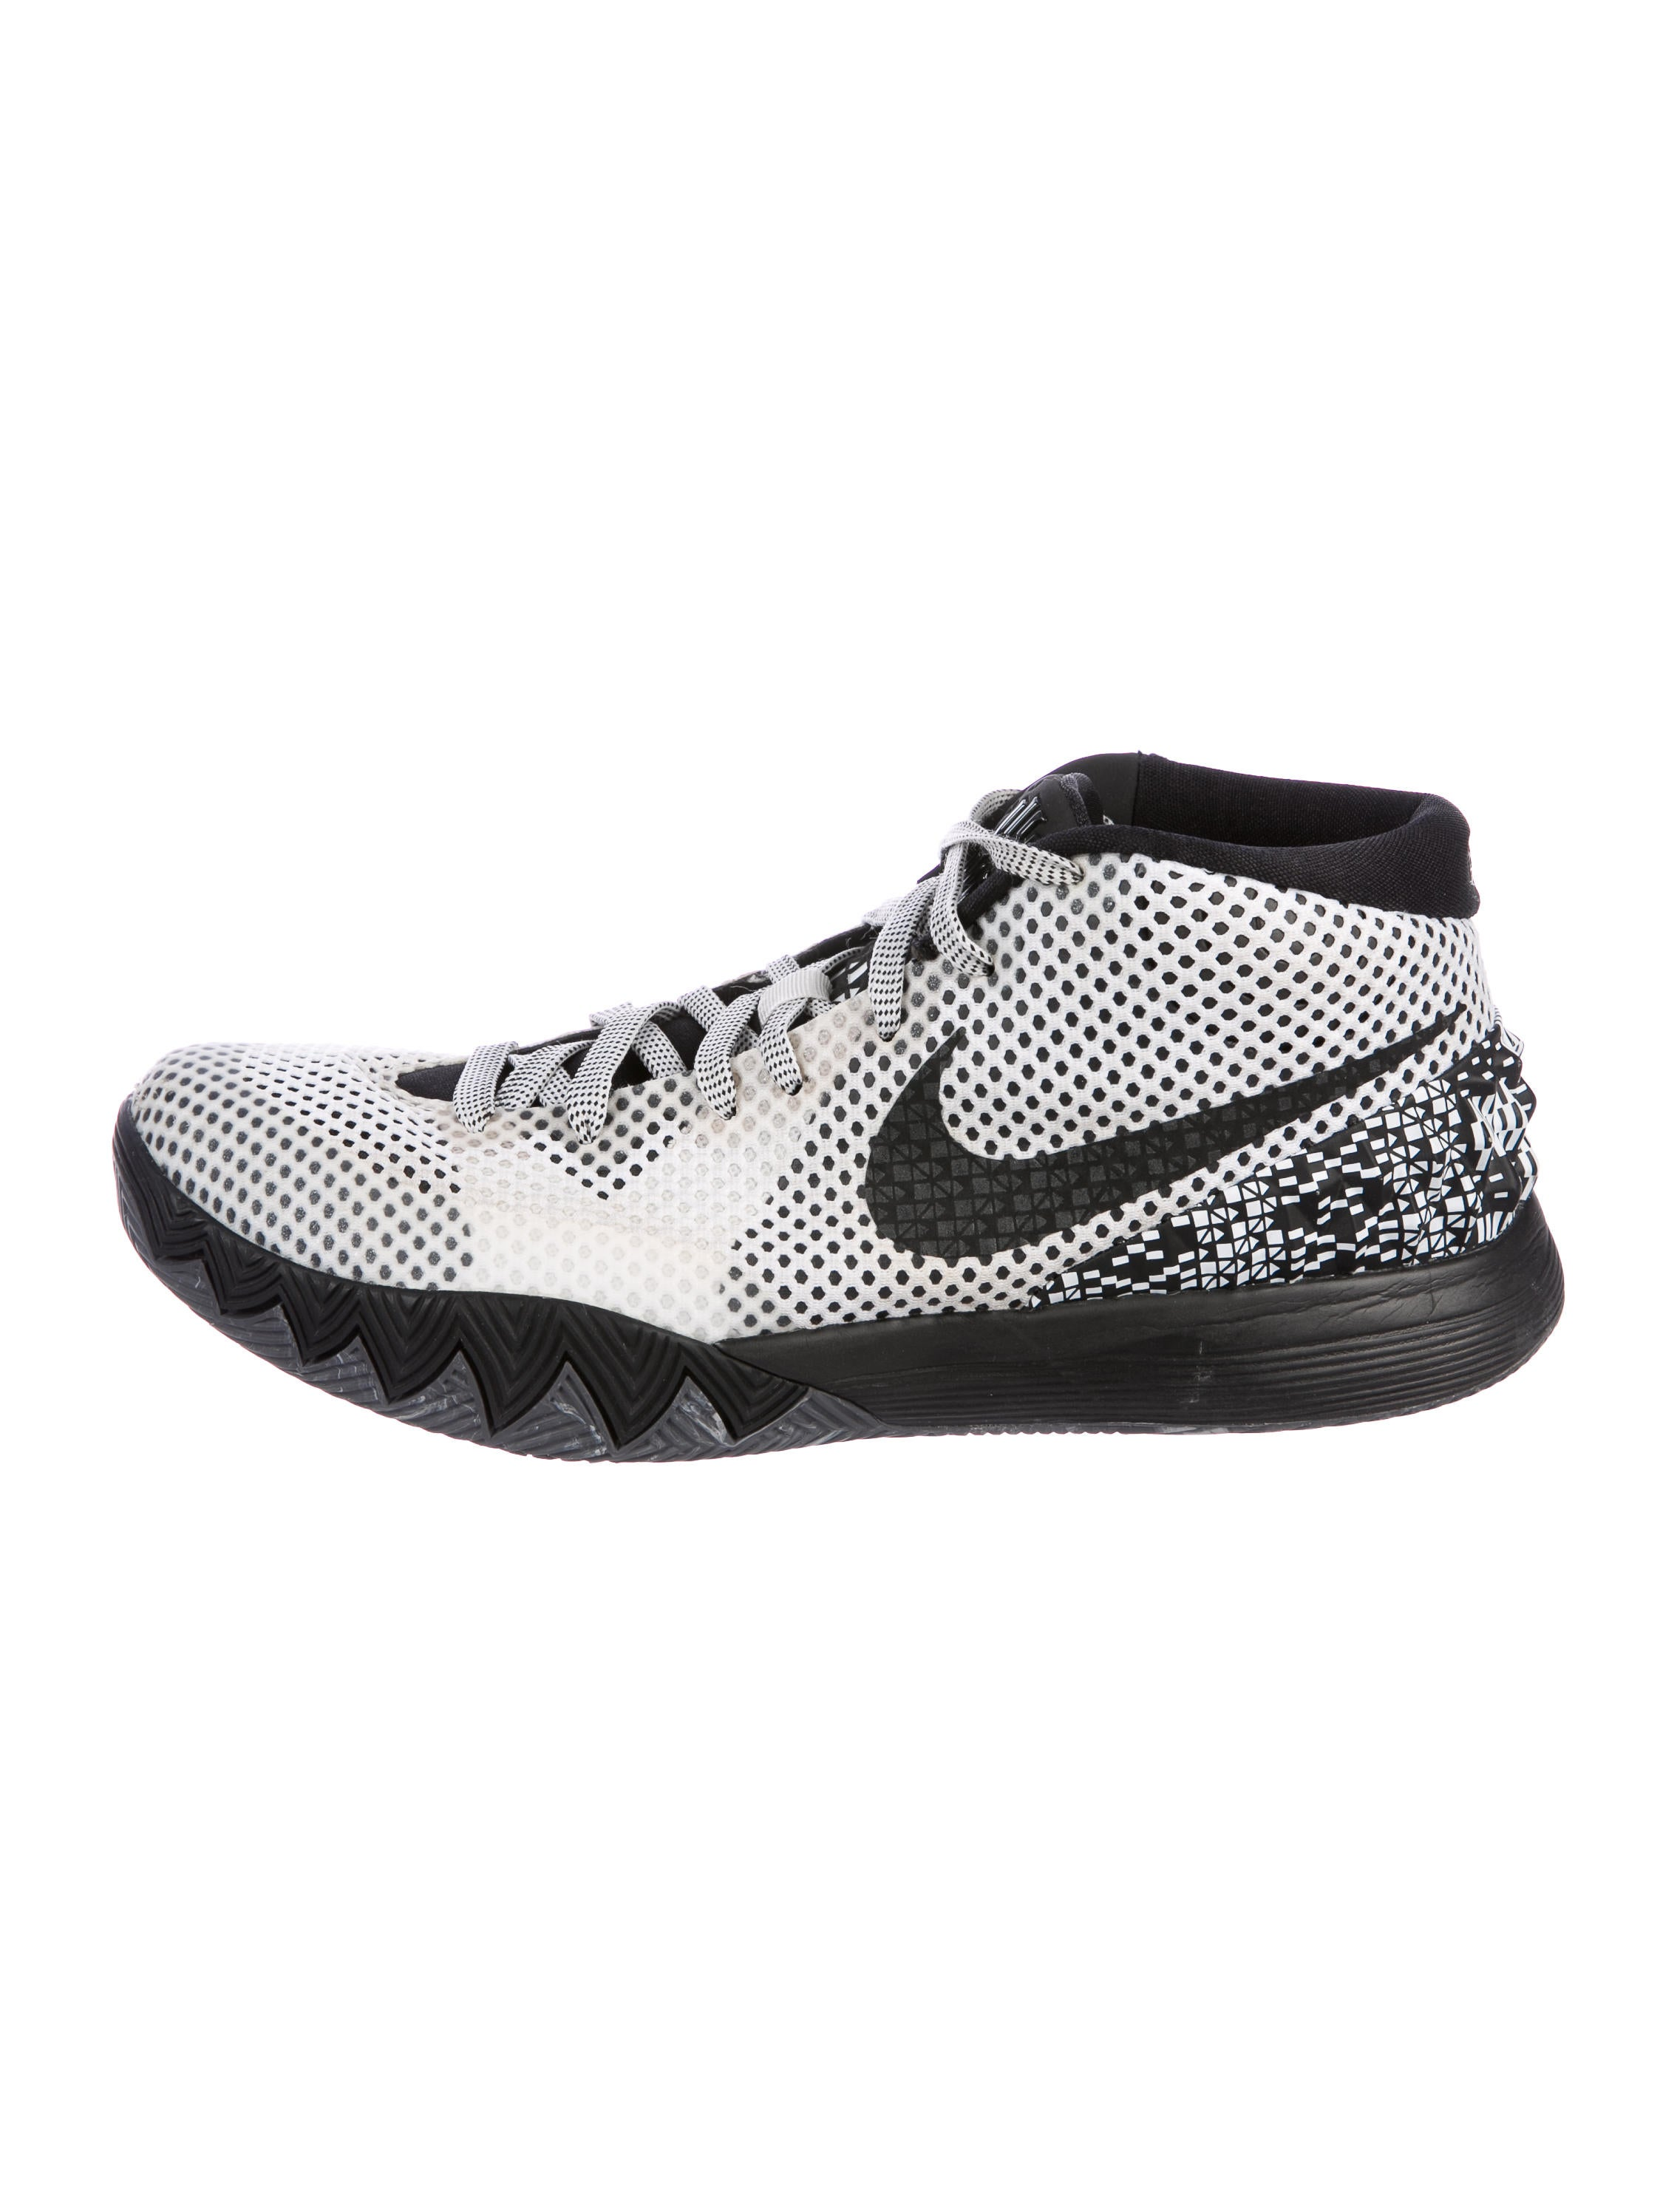 6ce69be73104 official when do the kyrie 1 bhm come out 040a4 aa920